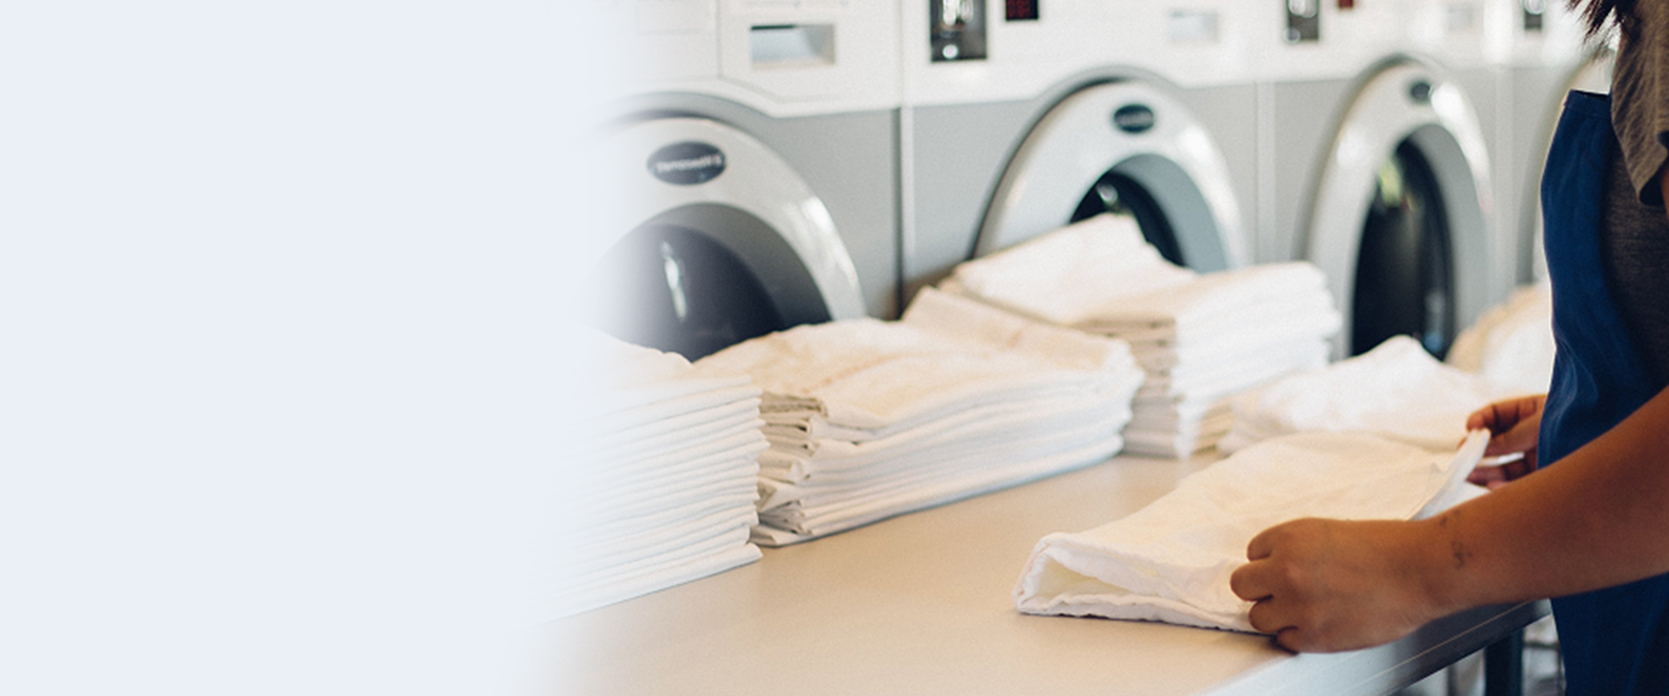 Commercial Laundry Software